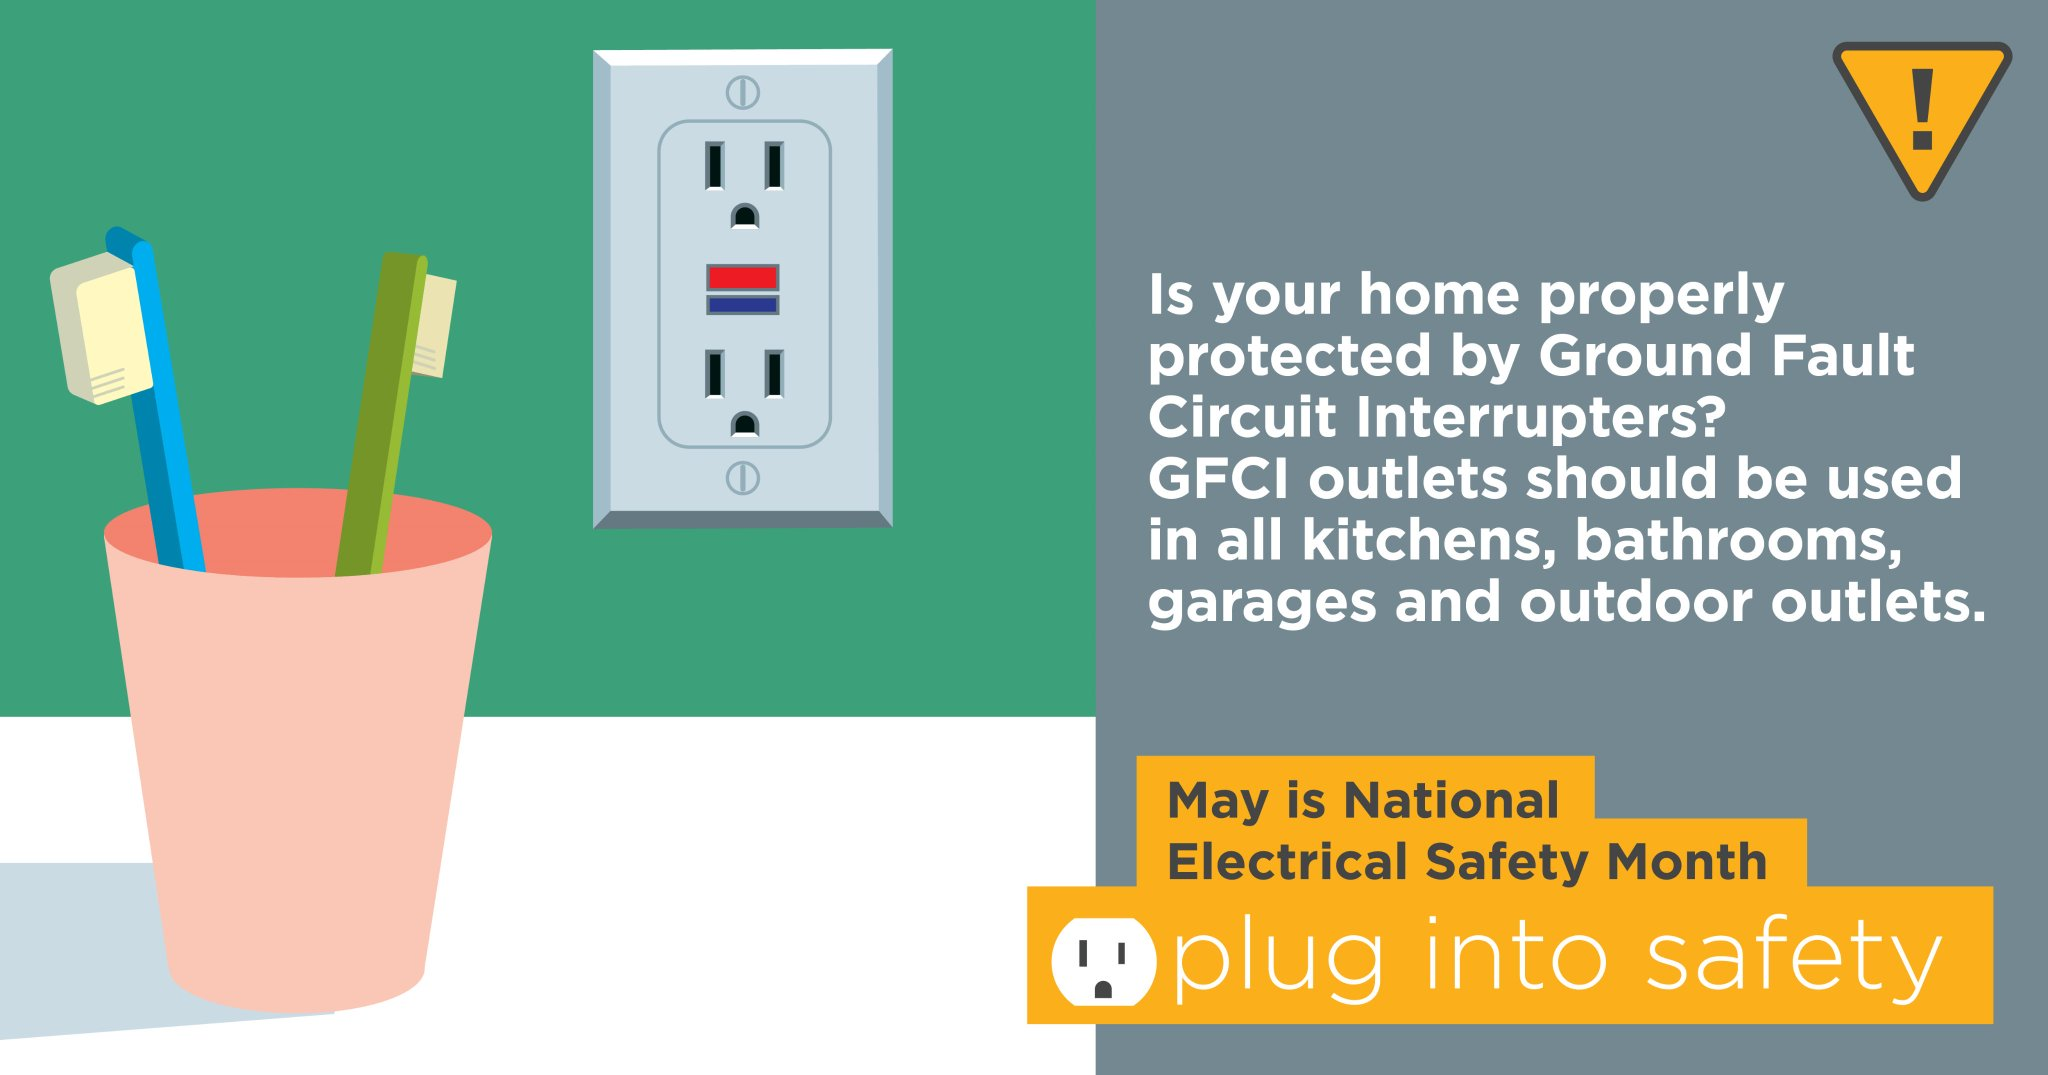 Living With Energy On Twitter Make Sure To Install And Use Gfci Ground Fault Circuit Interrupter Outlet Safe Household Outlets Near Faucets Outdoors Avoid Shock Hazards